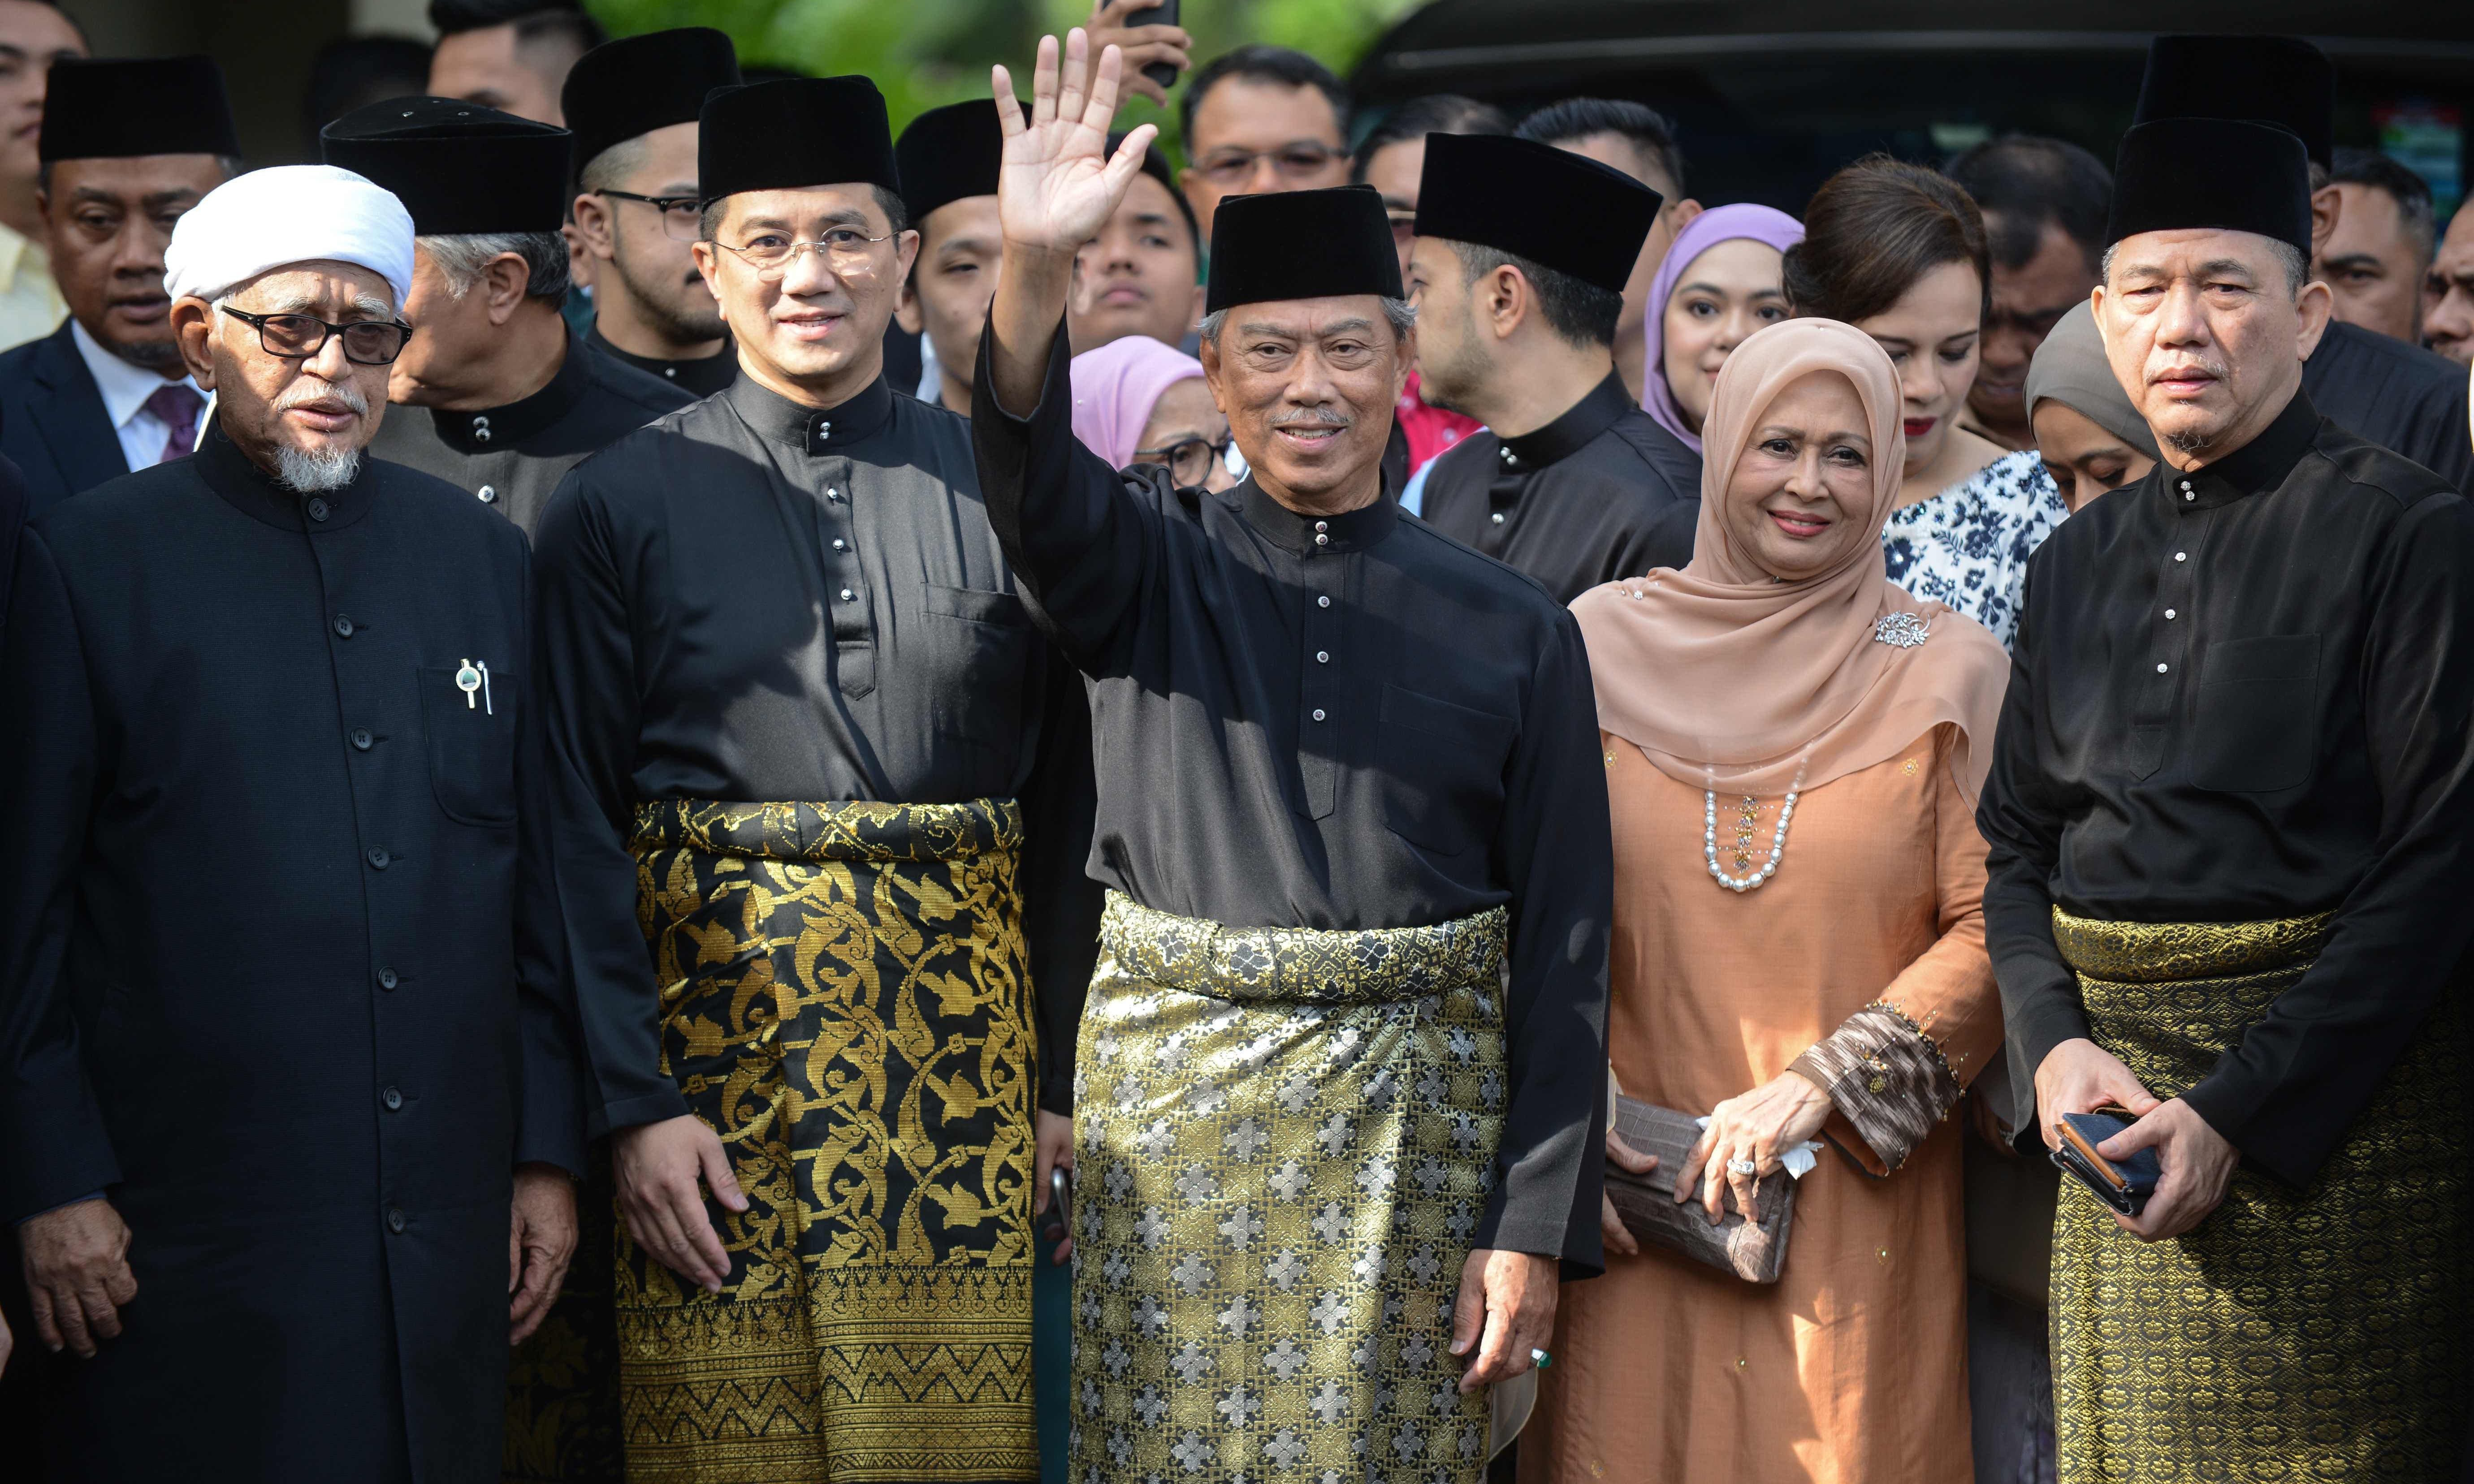 Malaysia's incoming prime minister Muhyiddin Yassin (centre) waving outside his residence in Kuala Lumpur before his swearing-in ceremony as the country's new leader. — Photo courtesy handout from Malaysia's Department of Information/AFP.